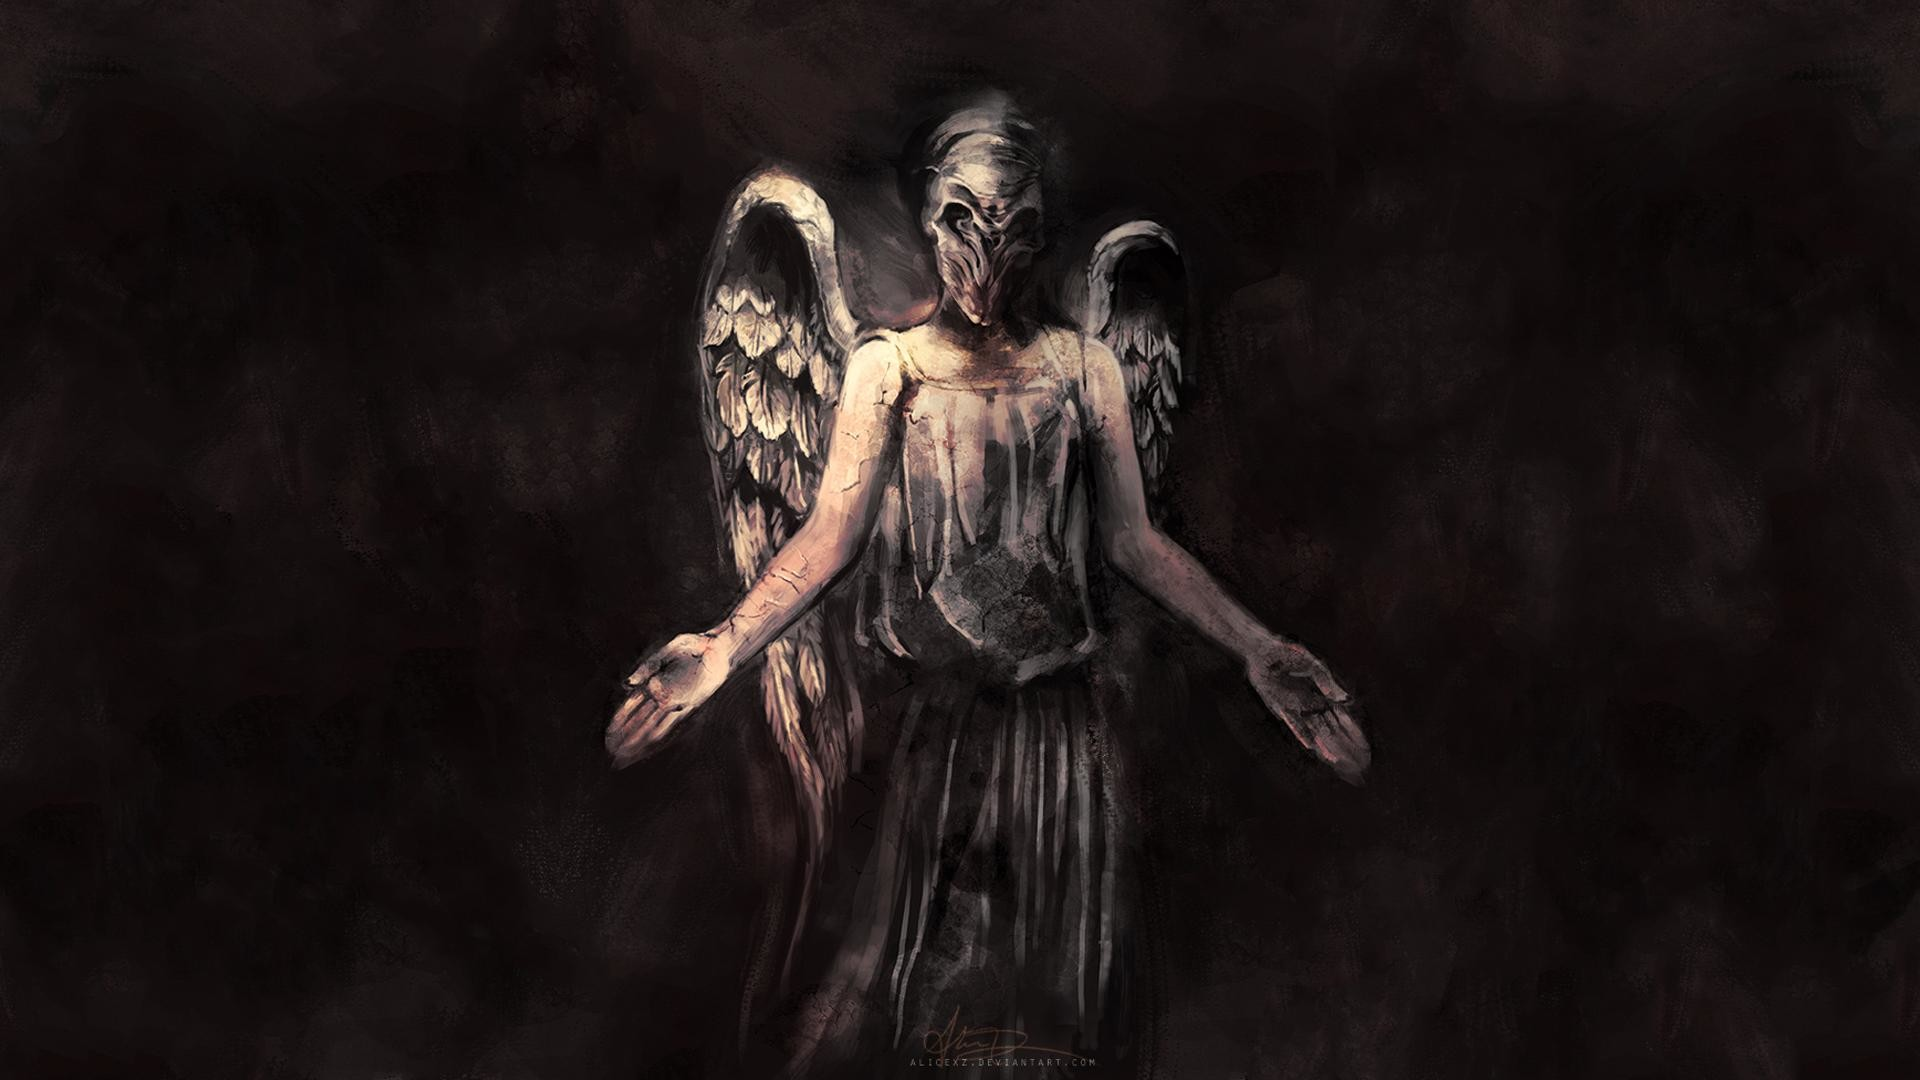 Res: 1920x1080, Doctor Who The Silence angels dark fallen wings fantasy evil scary